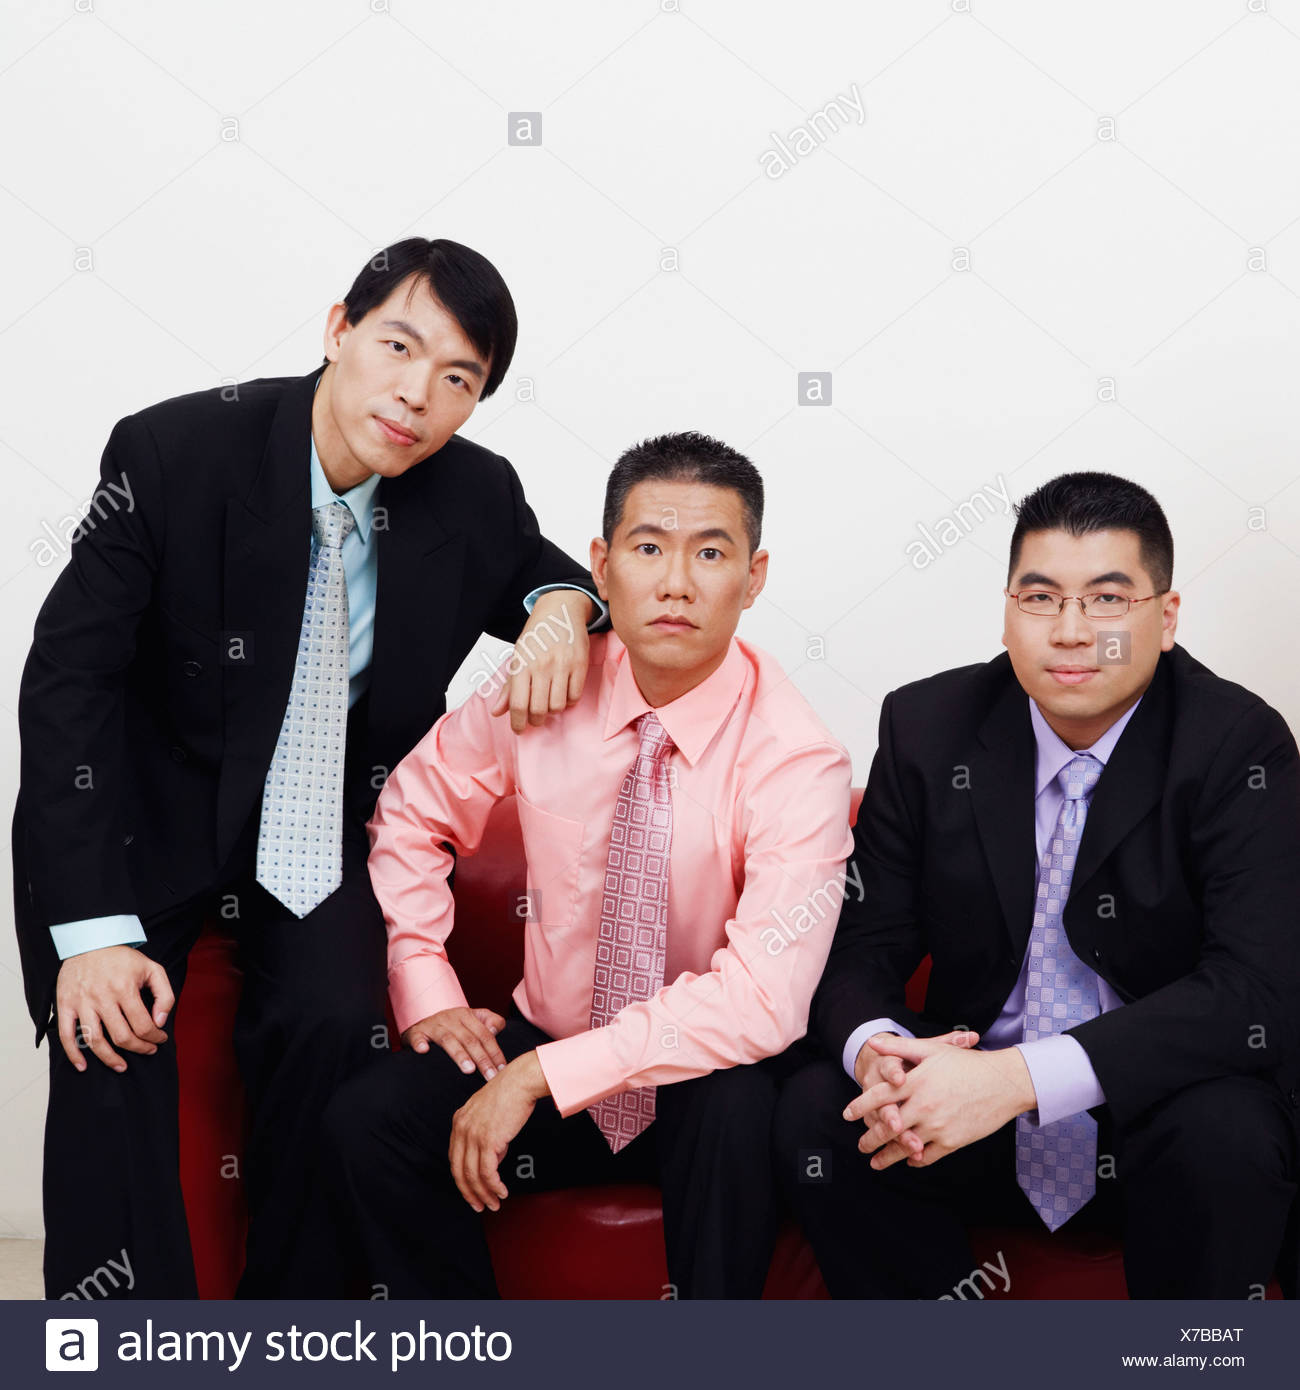 Portrait of four businessmen sitting together on a couch Stock Photo